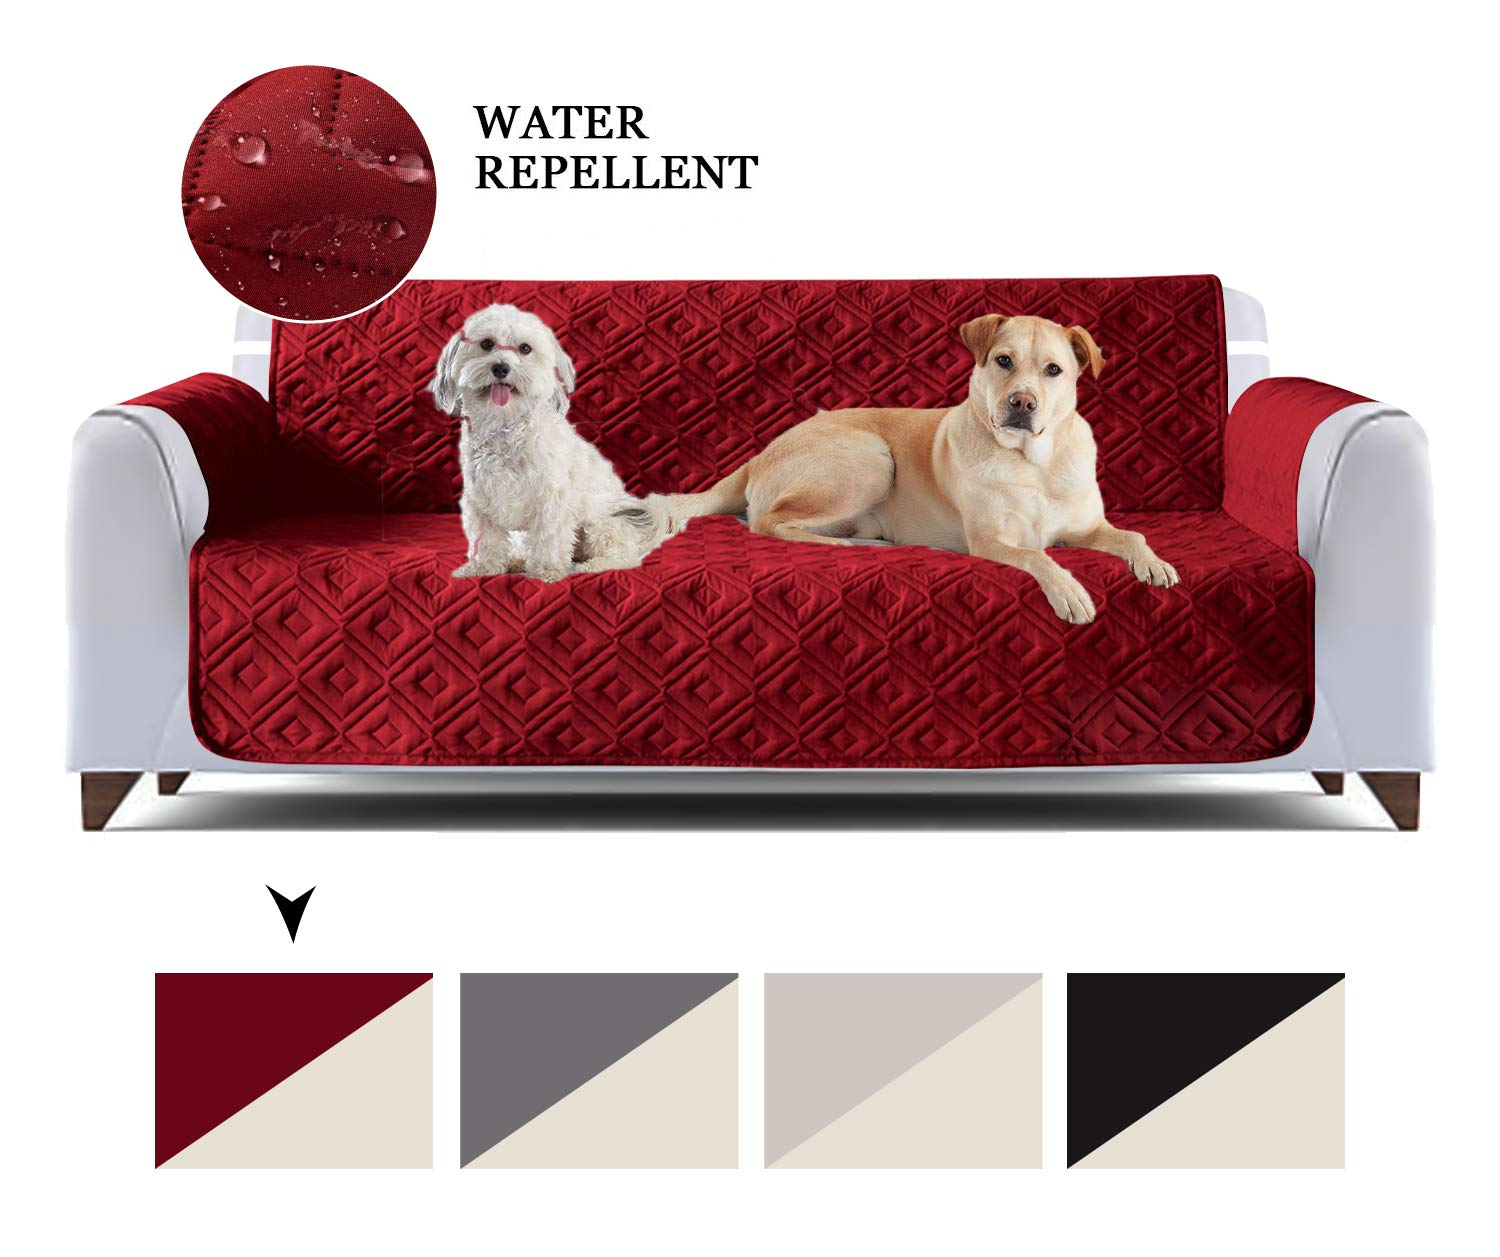 AMEHA Quilted Waterproof Sofa Slip Cover, Anti Slip Furniture Protector  Sofa Throw Pet Protectors, Sofa Covers for Dog (Burgundy, 8 Seater)